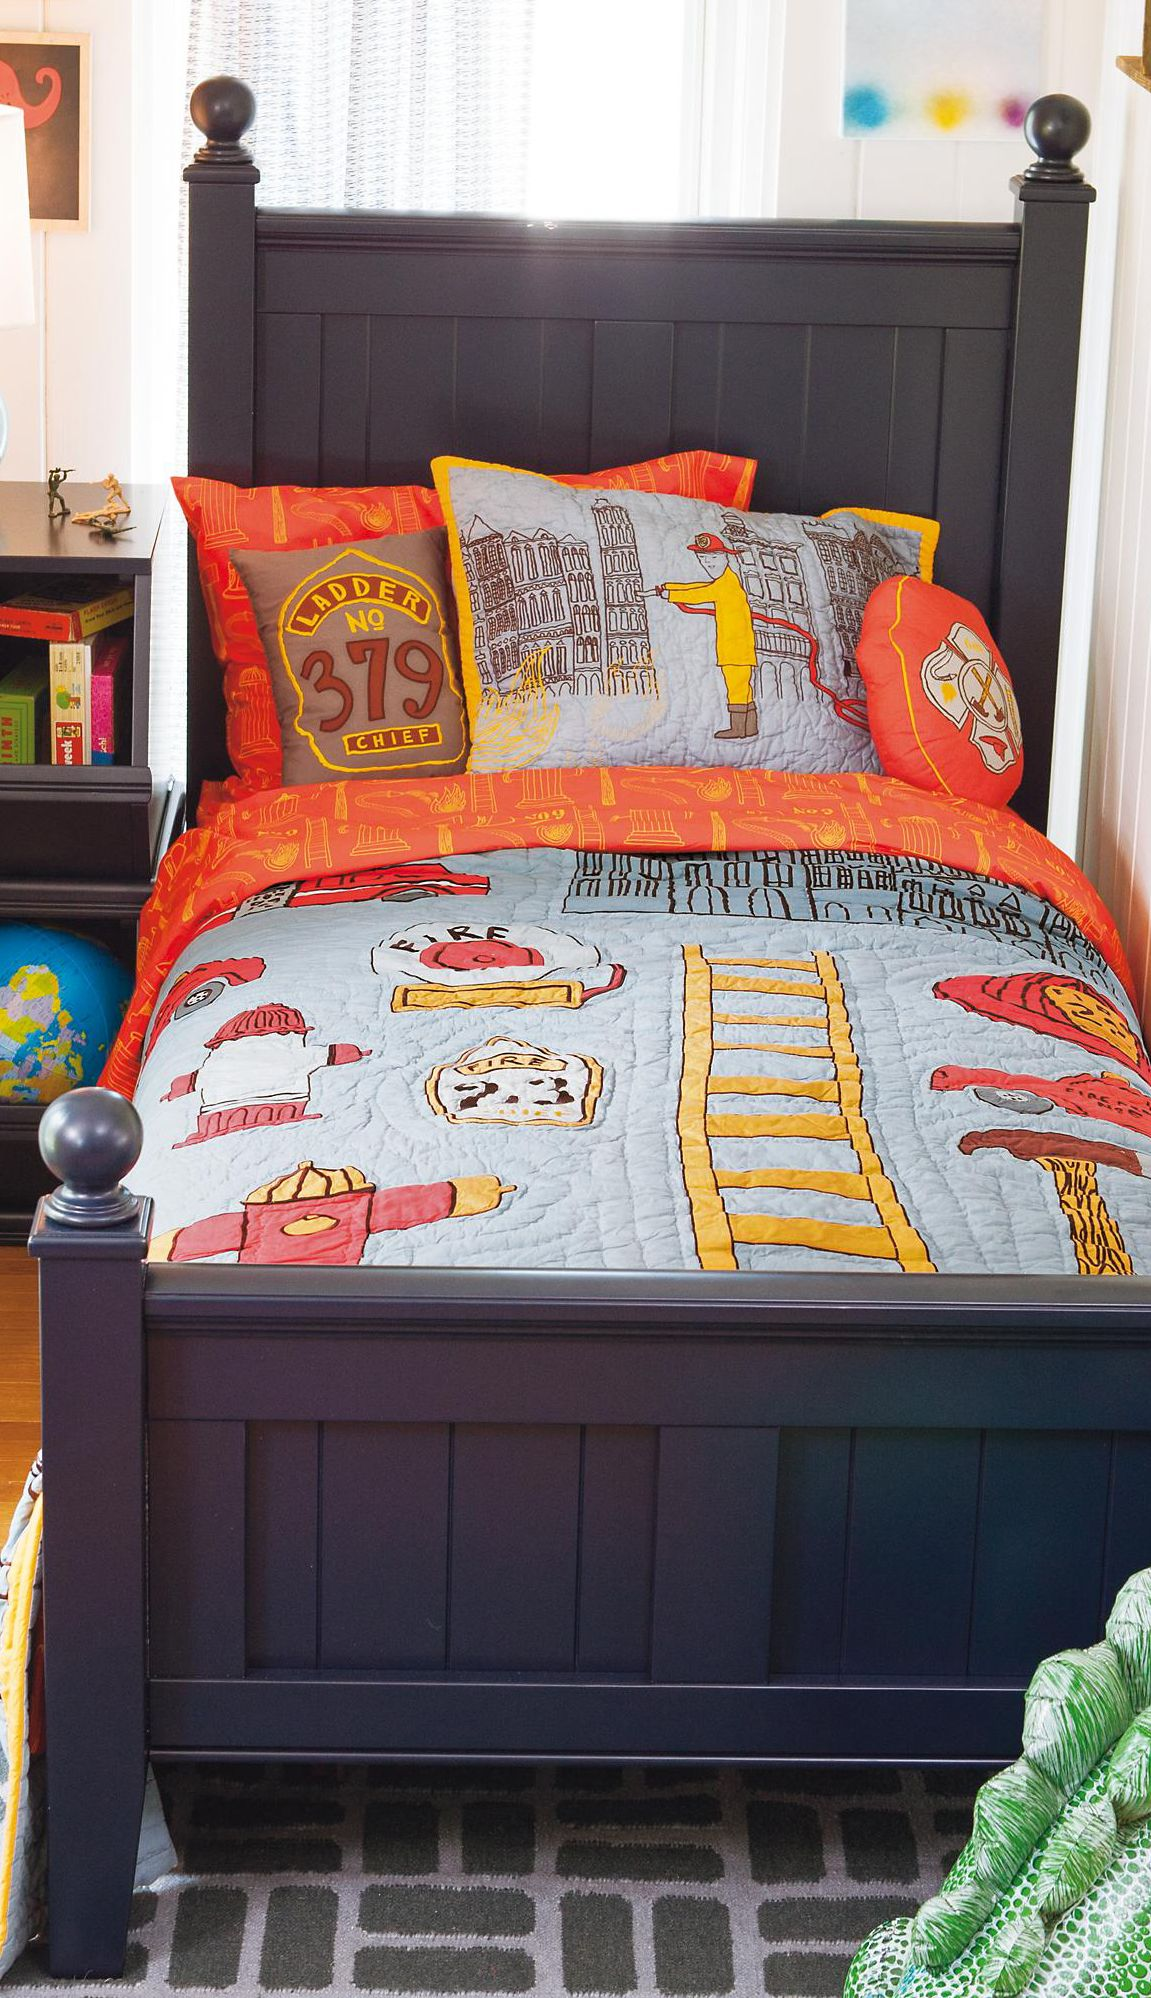 Boys Bedding & Room Decor - Kids Bedding Sets -